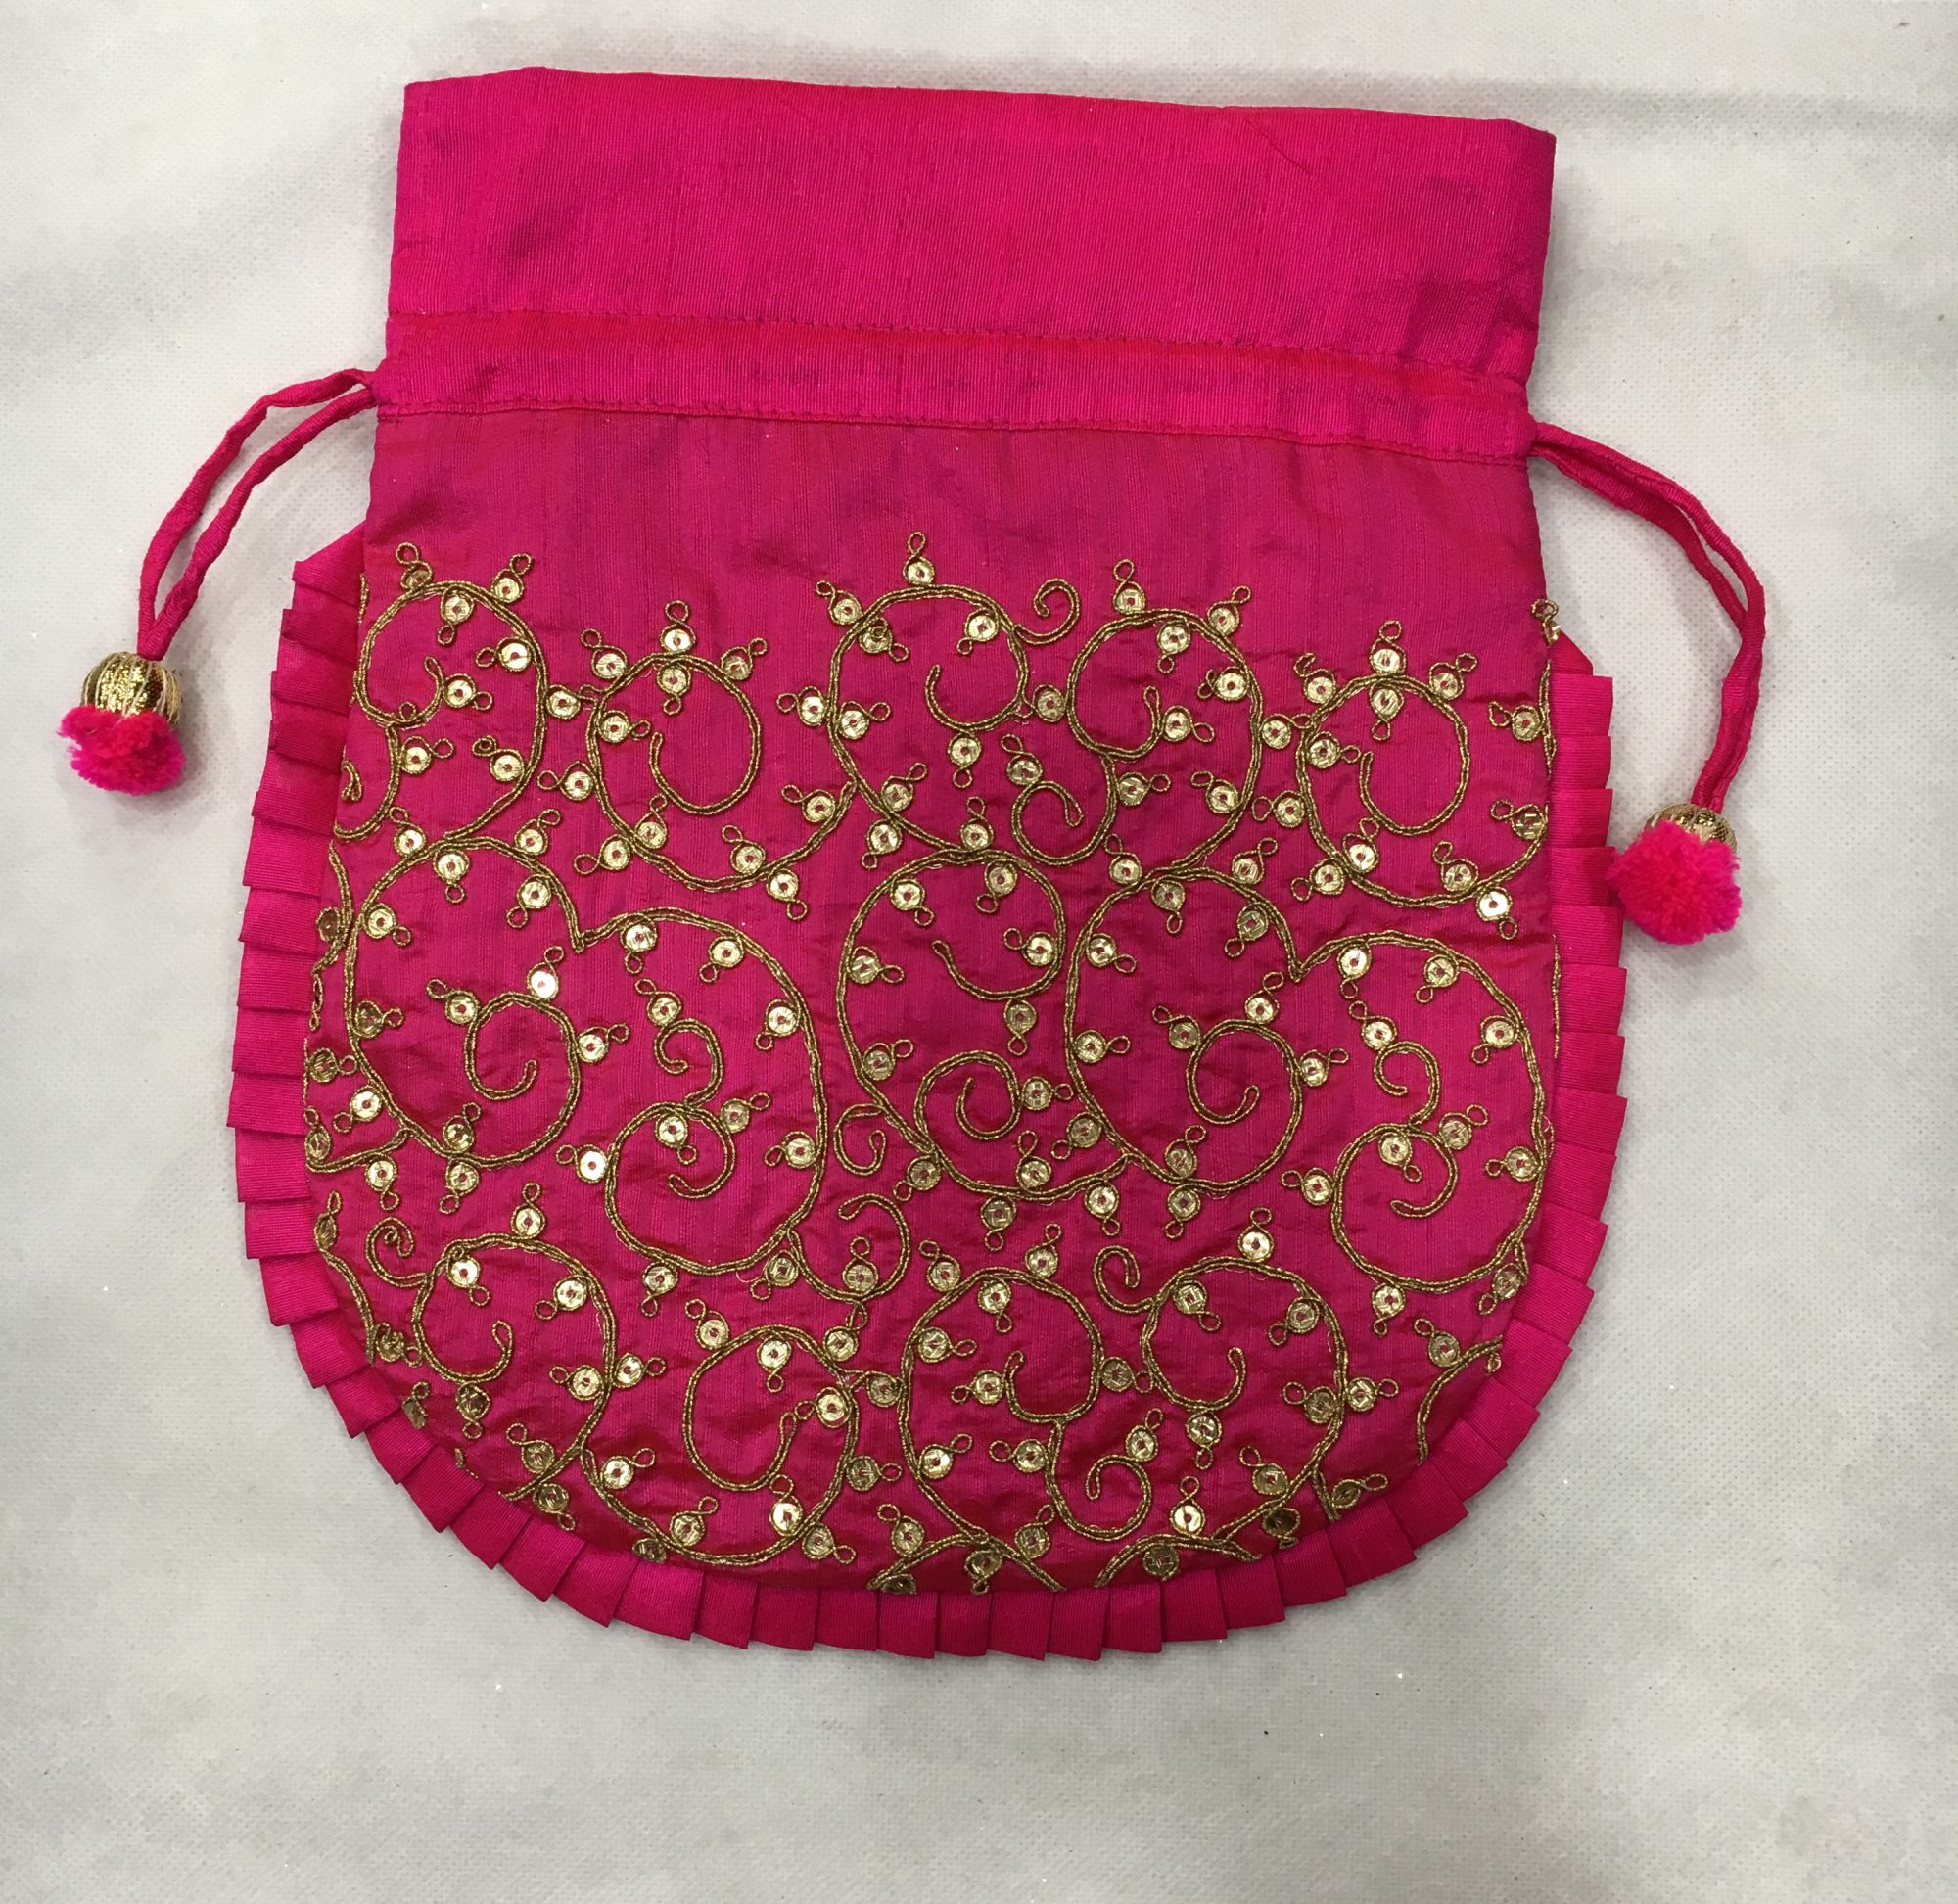 MACHINE WORK POTLI BAG FOR GIVE AWAY GIFTS